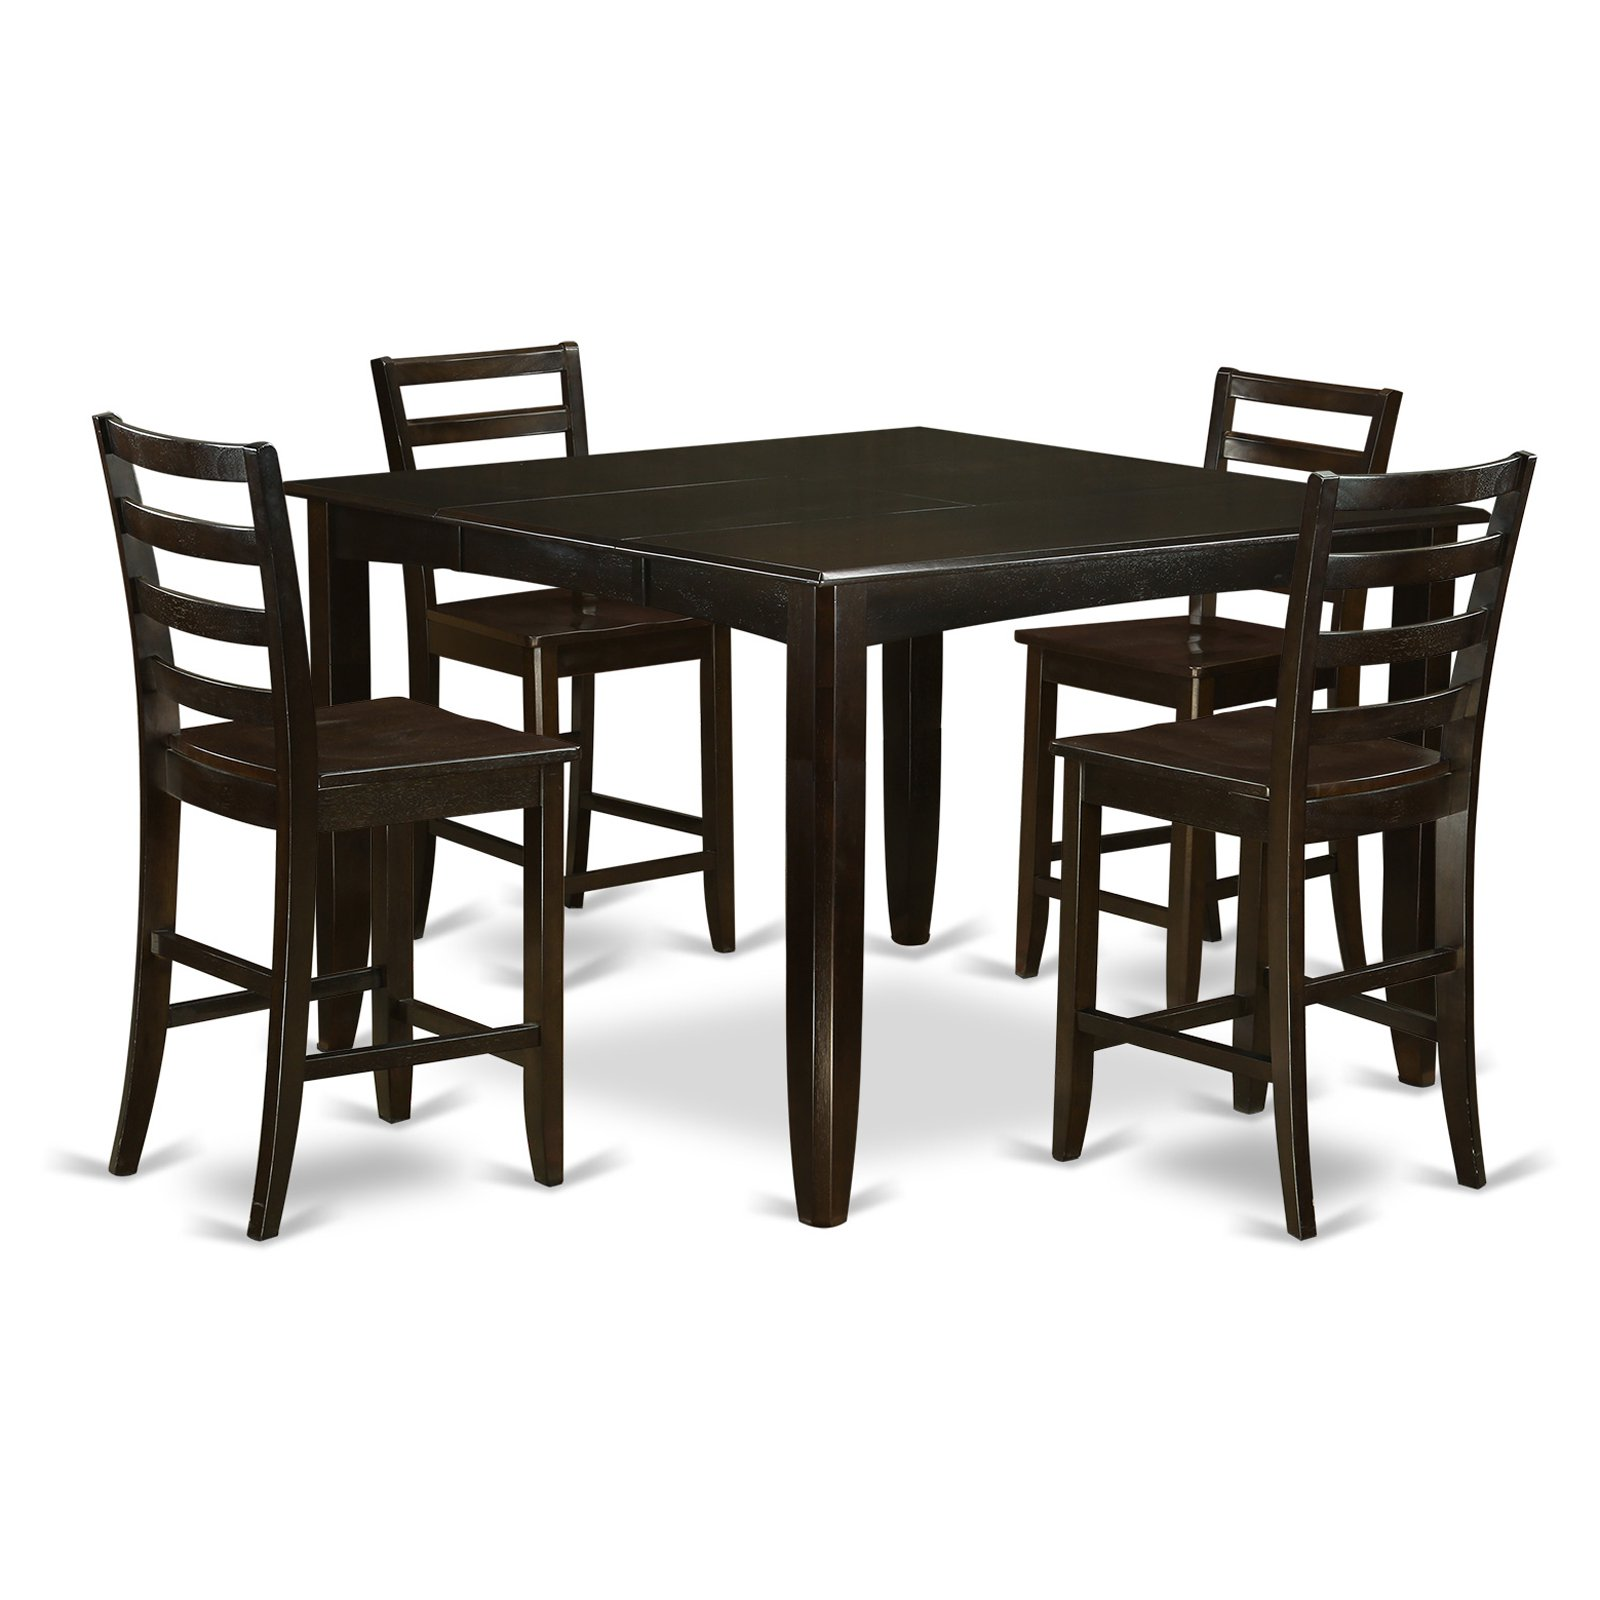 East West Furniture Fairwinds 5 Piece Ladder Back Dining Table Set